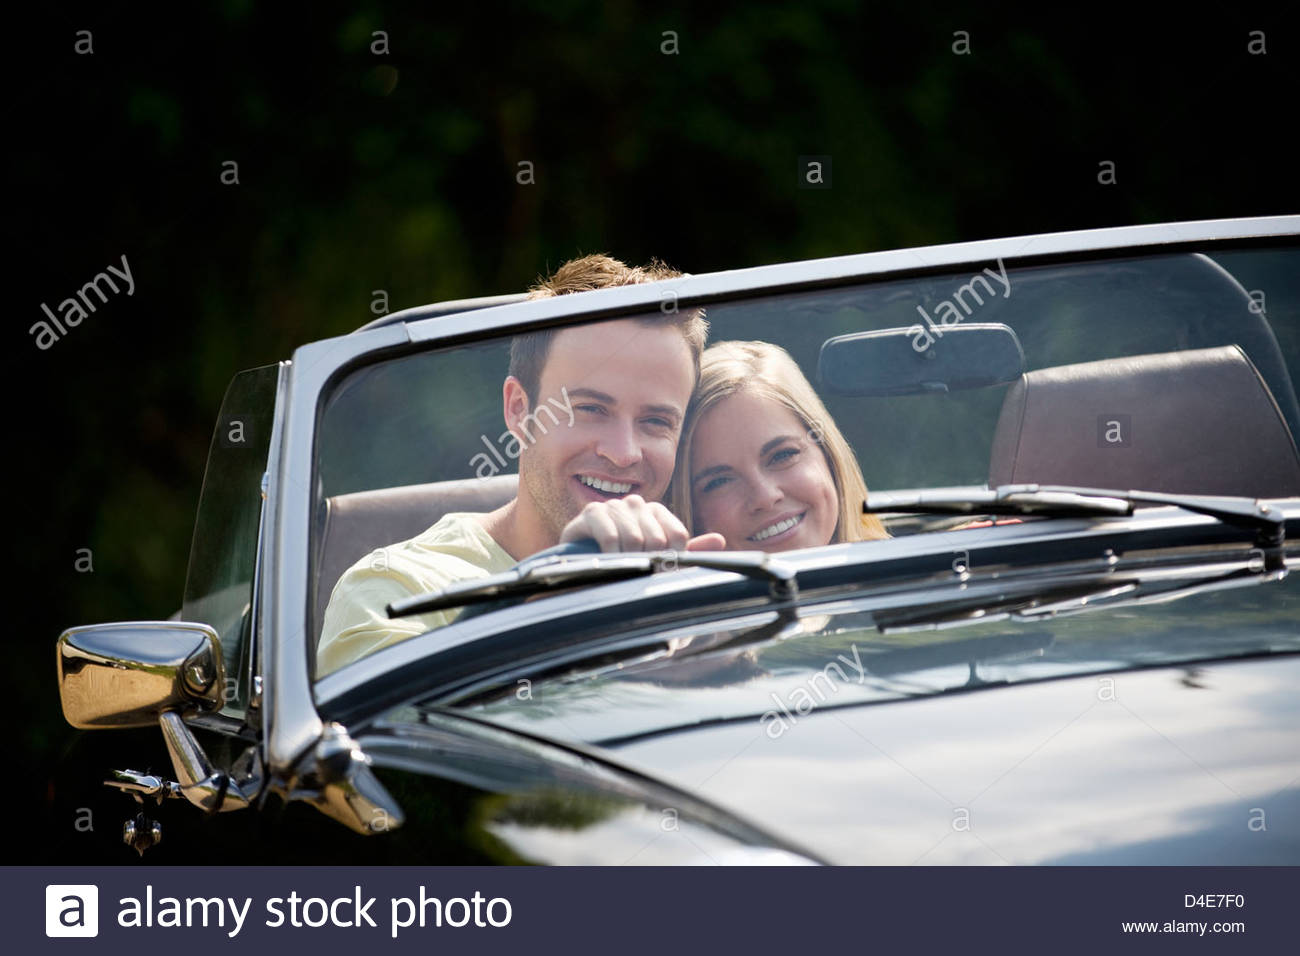 A young couple driving a black sports car - Stock Image